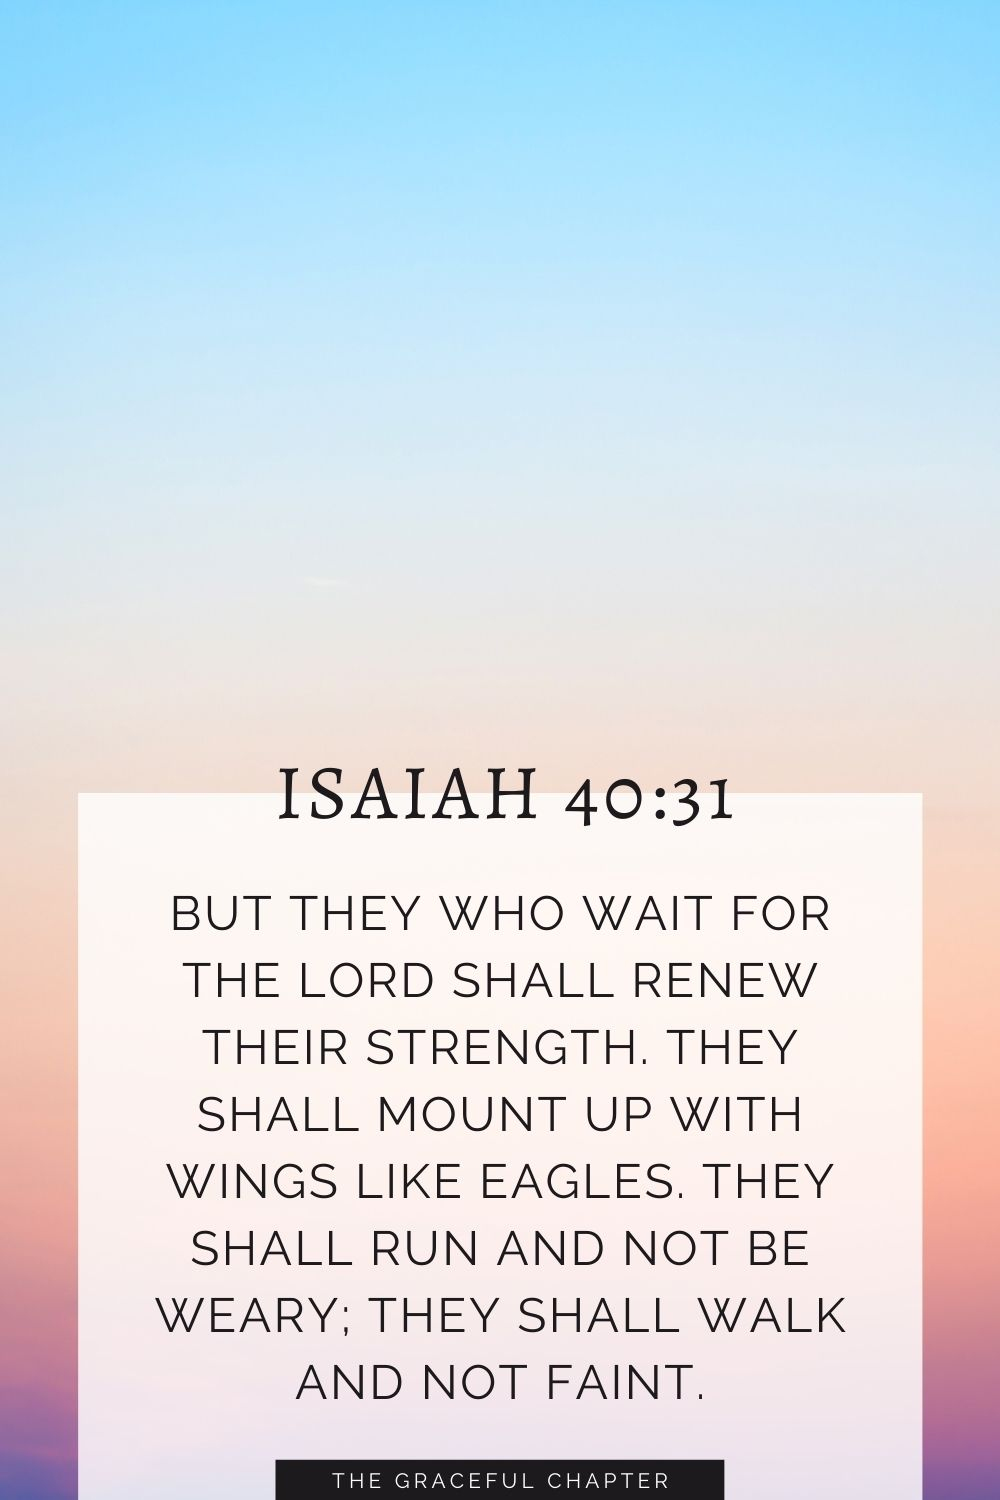 But they who wait for the Lord shall renew their strength; they shall mount up with wings like eagles; they shall run and not be weary; they shall walk and not faint. Isaiah 40:31